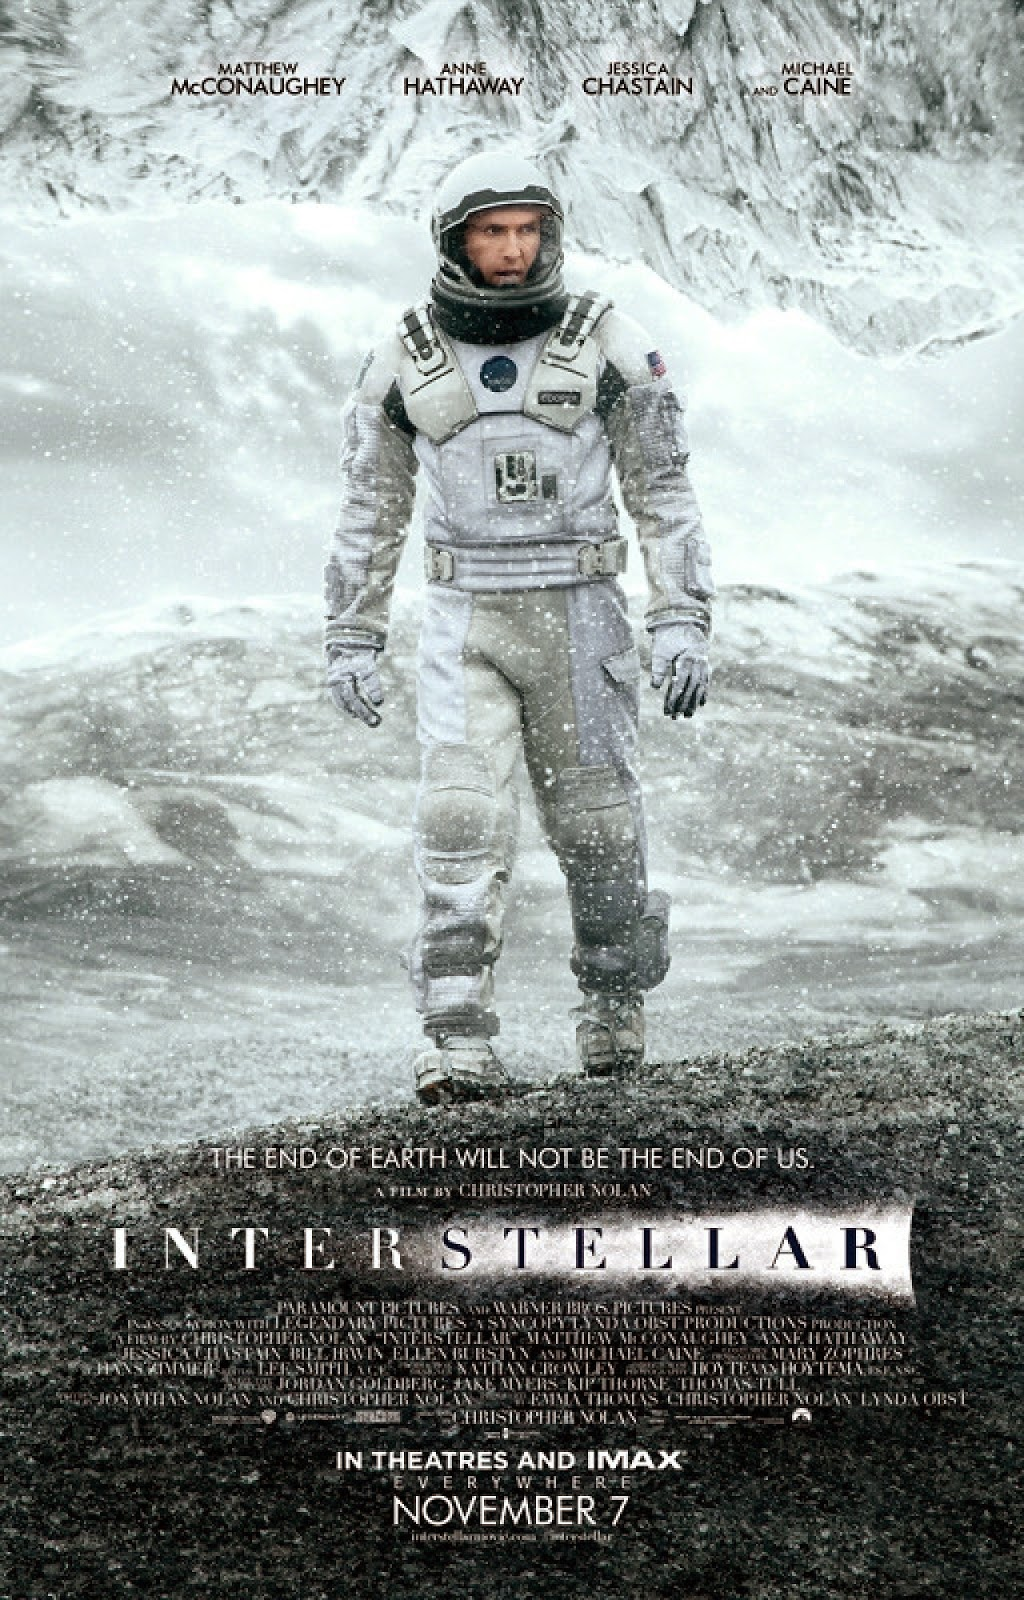 Interstellar Ver gratis online en vivo streaming sin descarga ni torrent